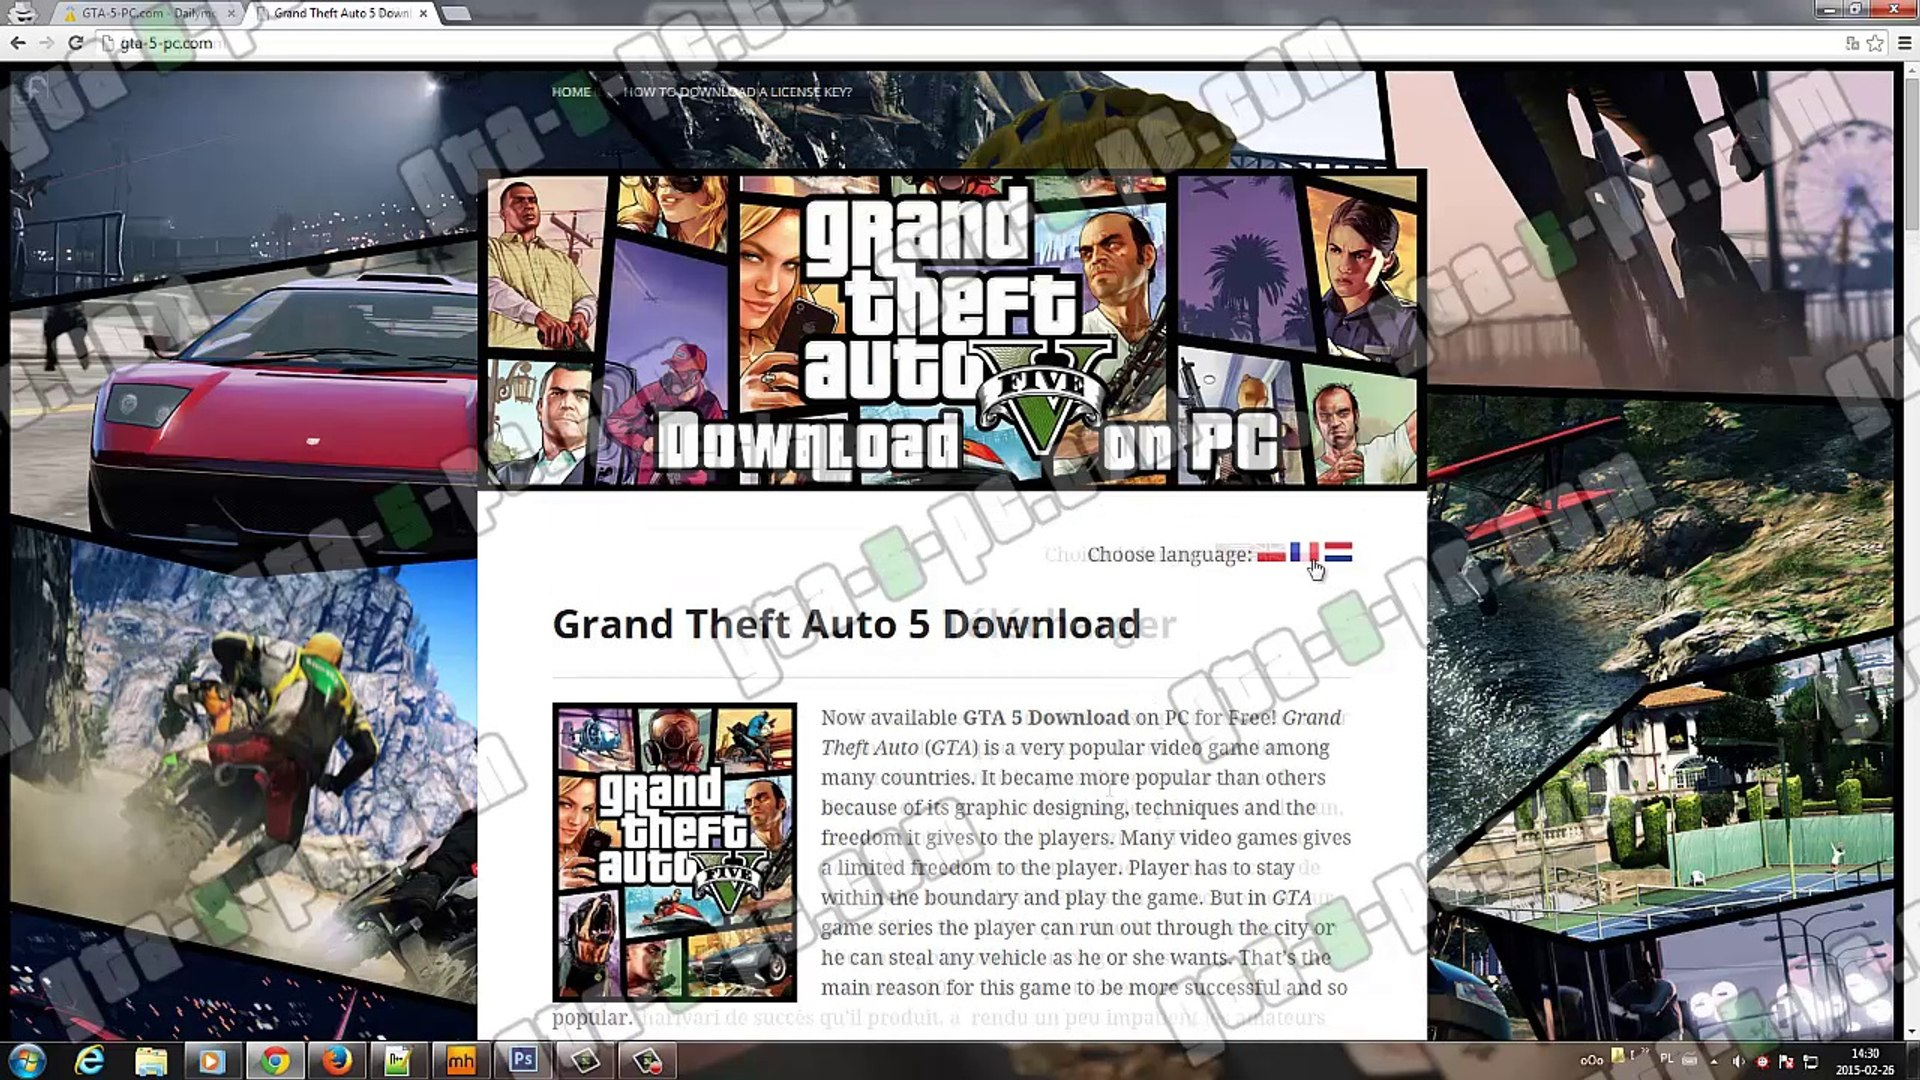 How to download a license key - GTA-5-PC com